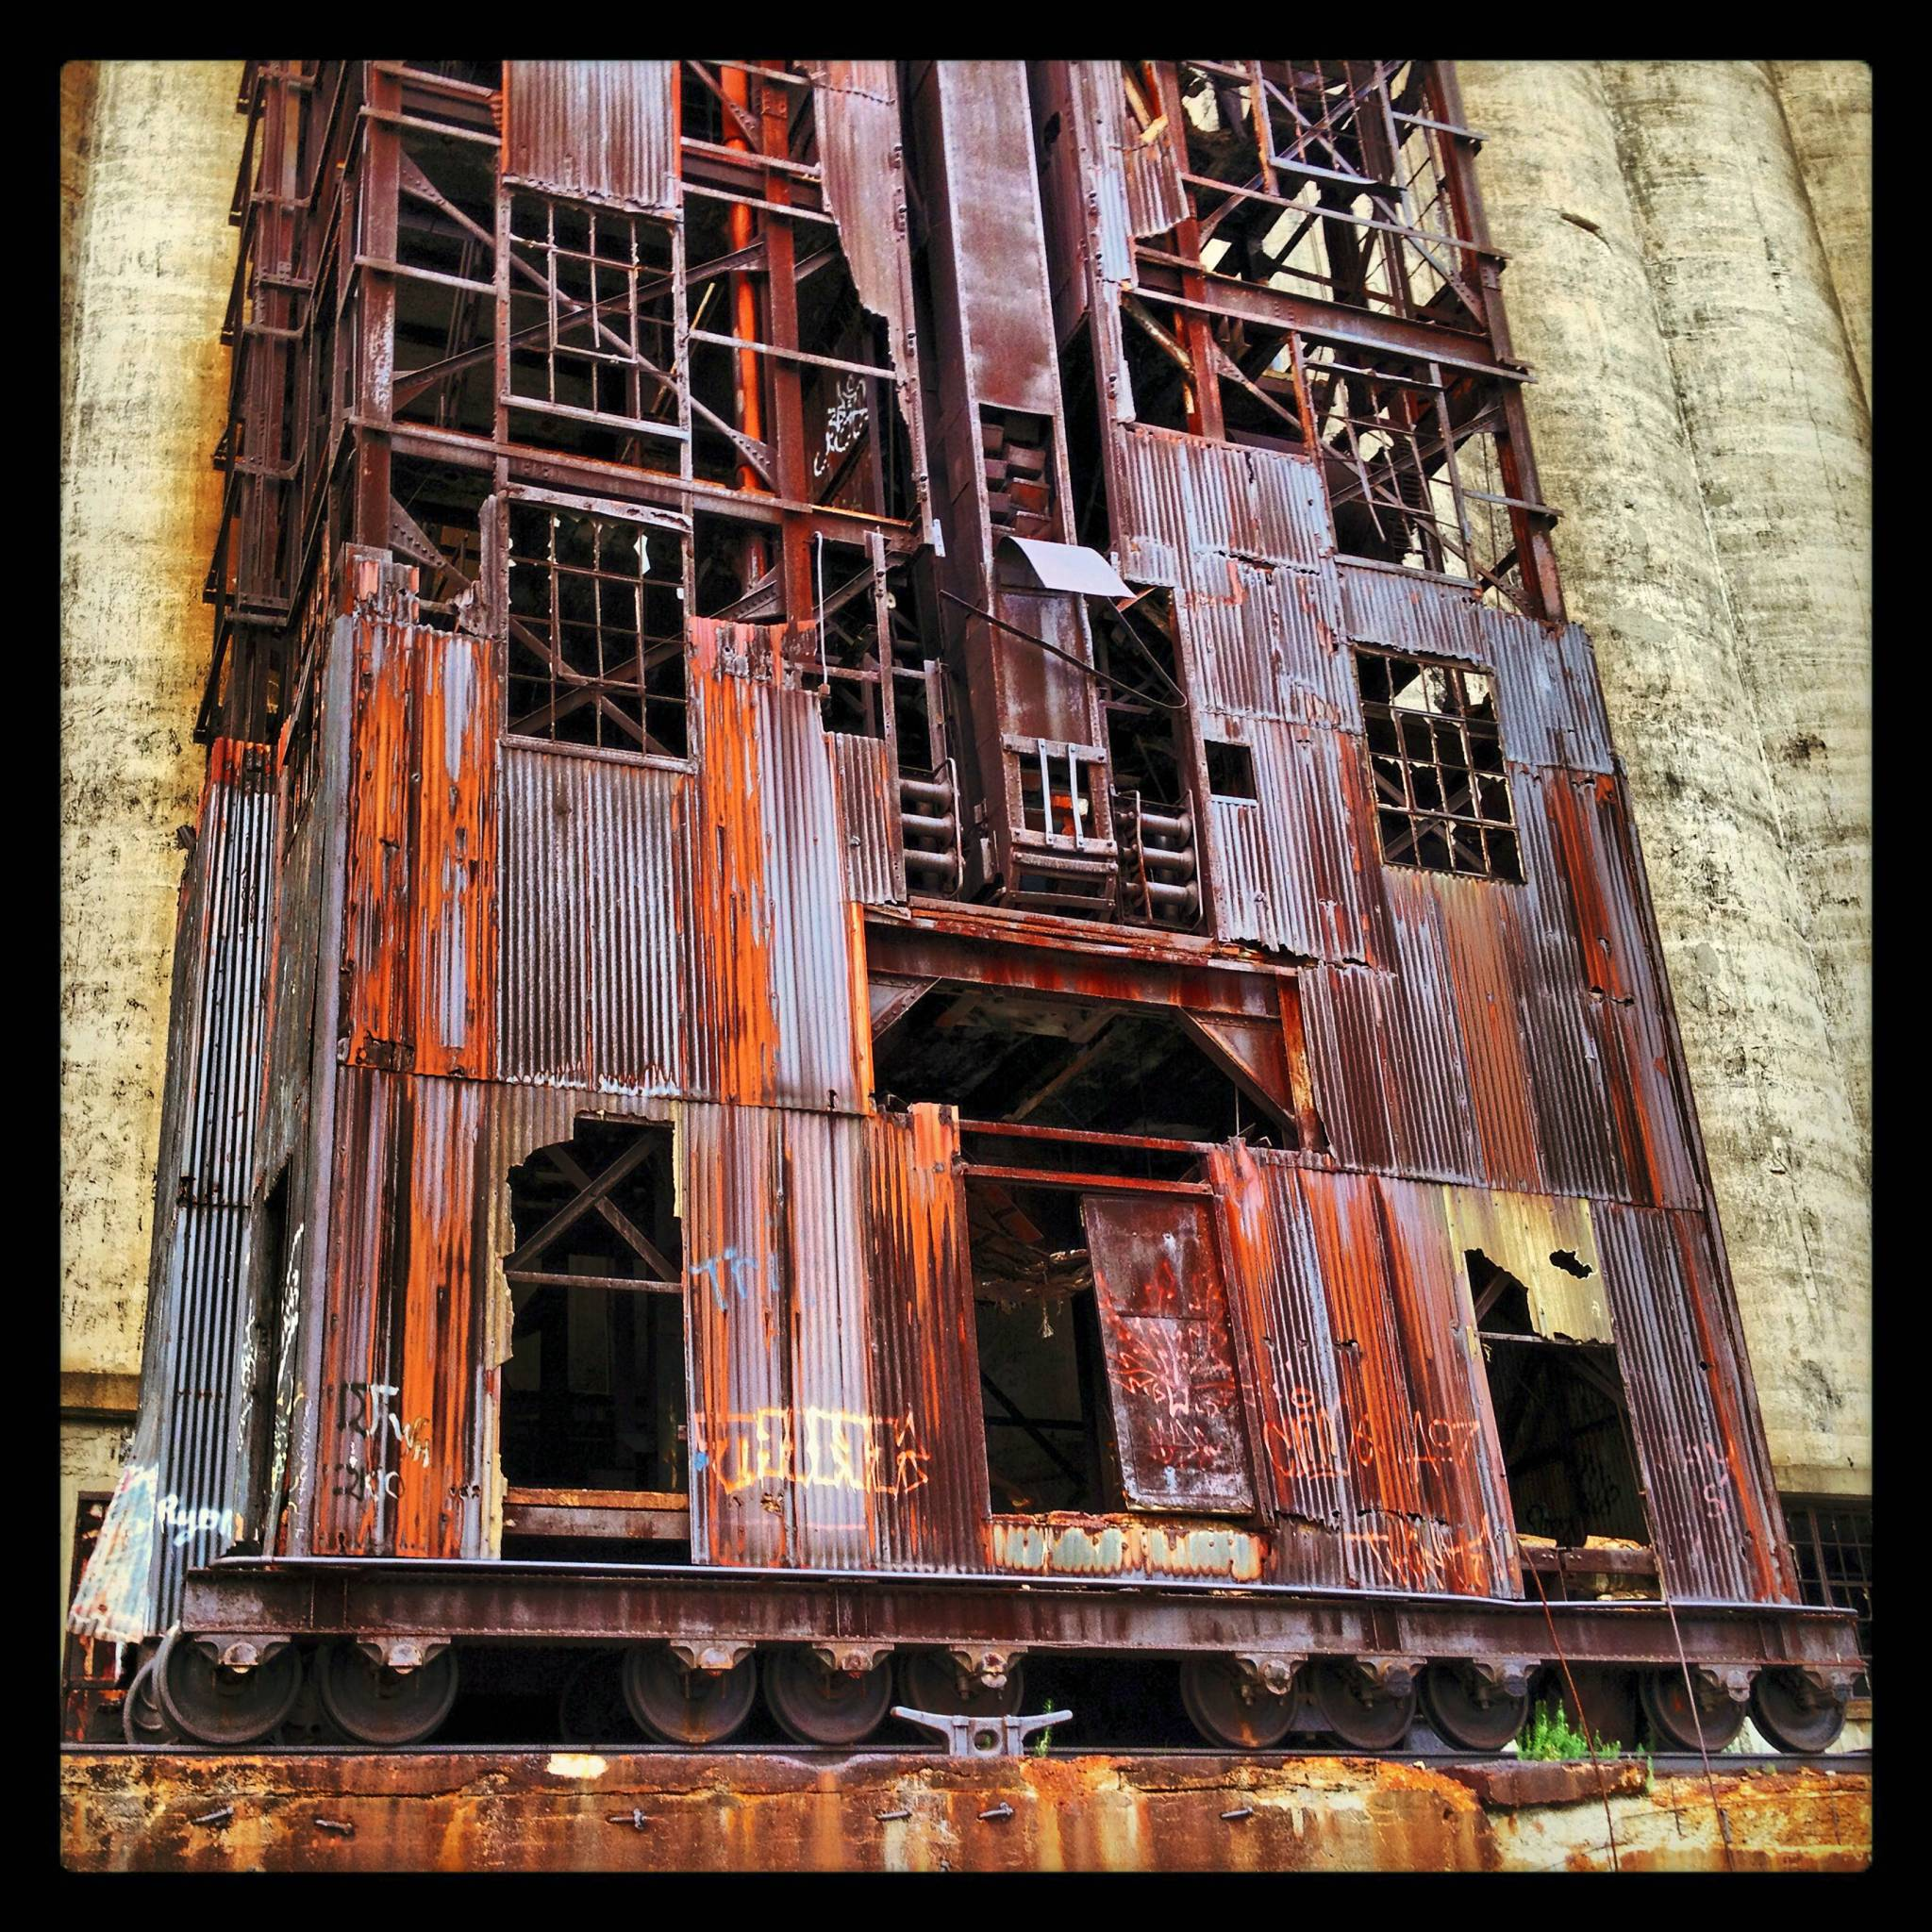 Industrial architecture in the Rust Belt